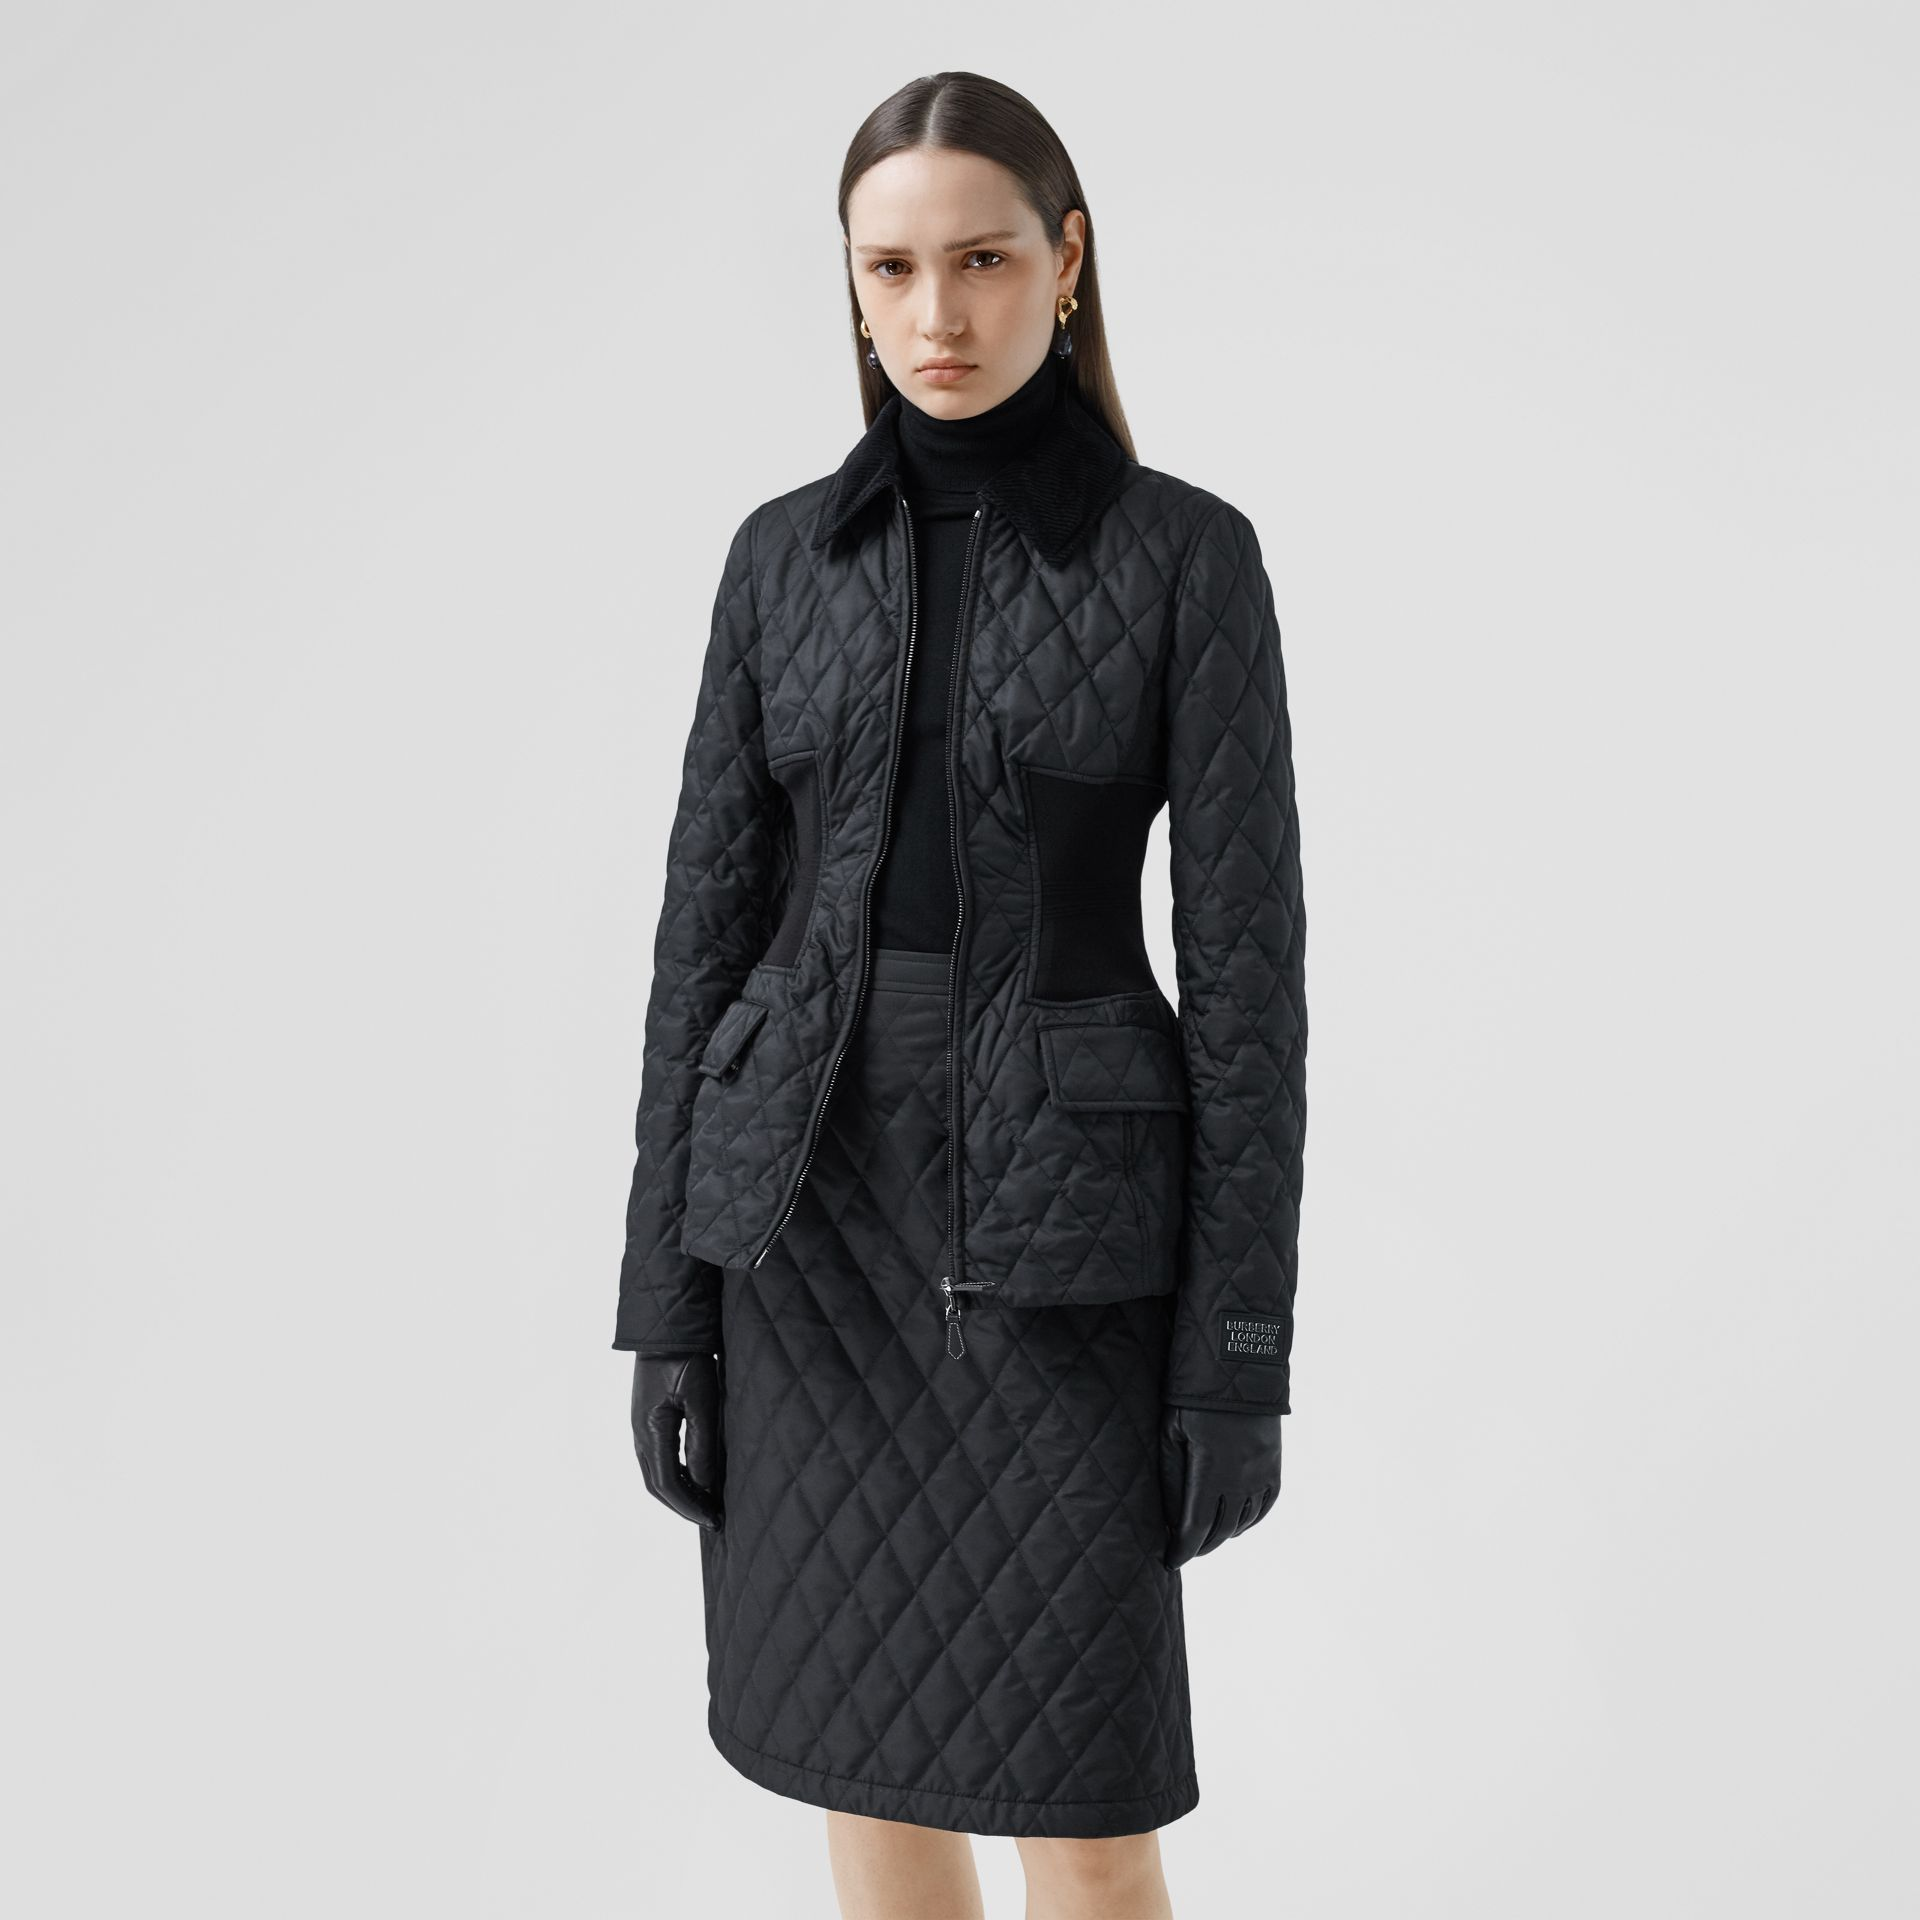 Rib Knit Panel Diamond Quilted Barn Jacket in Black - Women | Burberry United Kingdom - gallery image 6